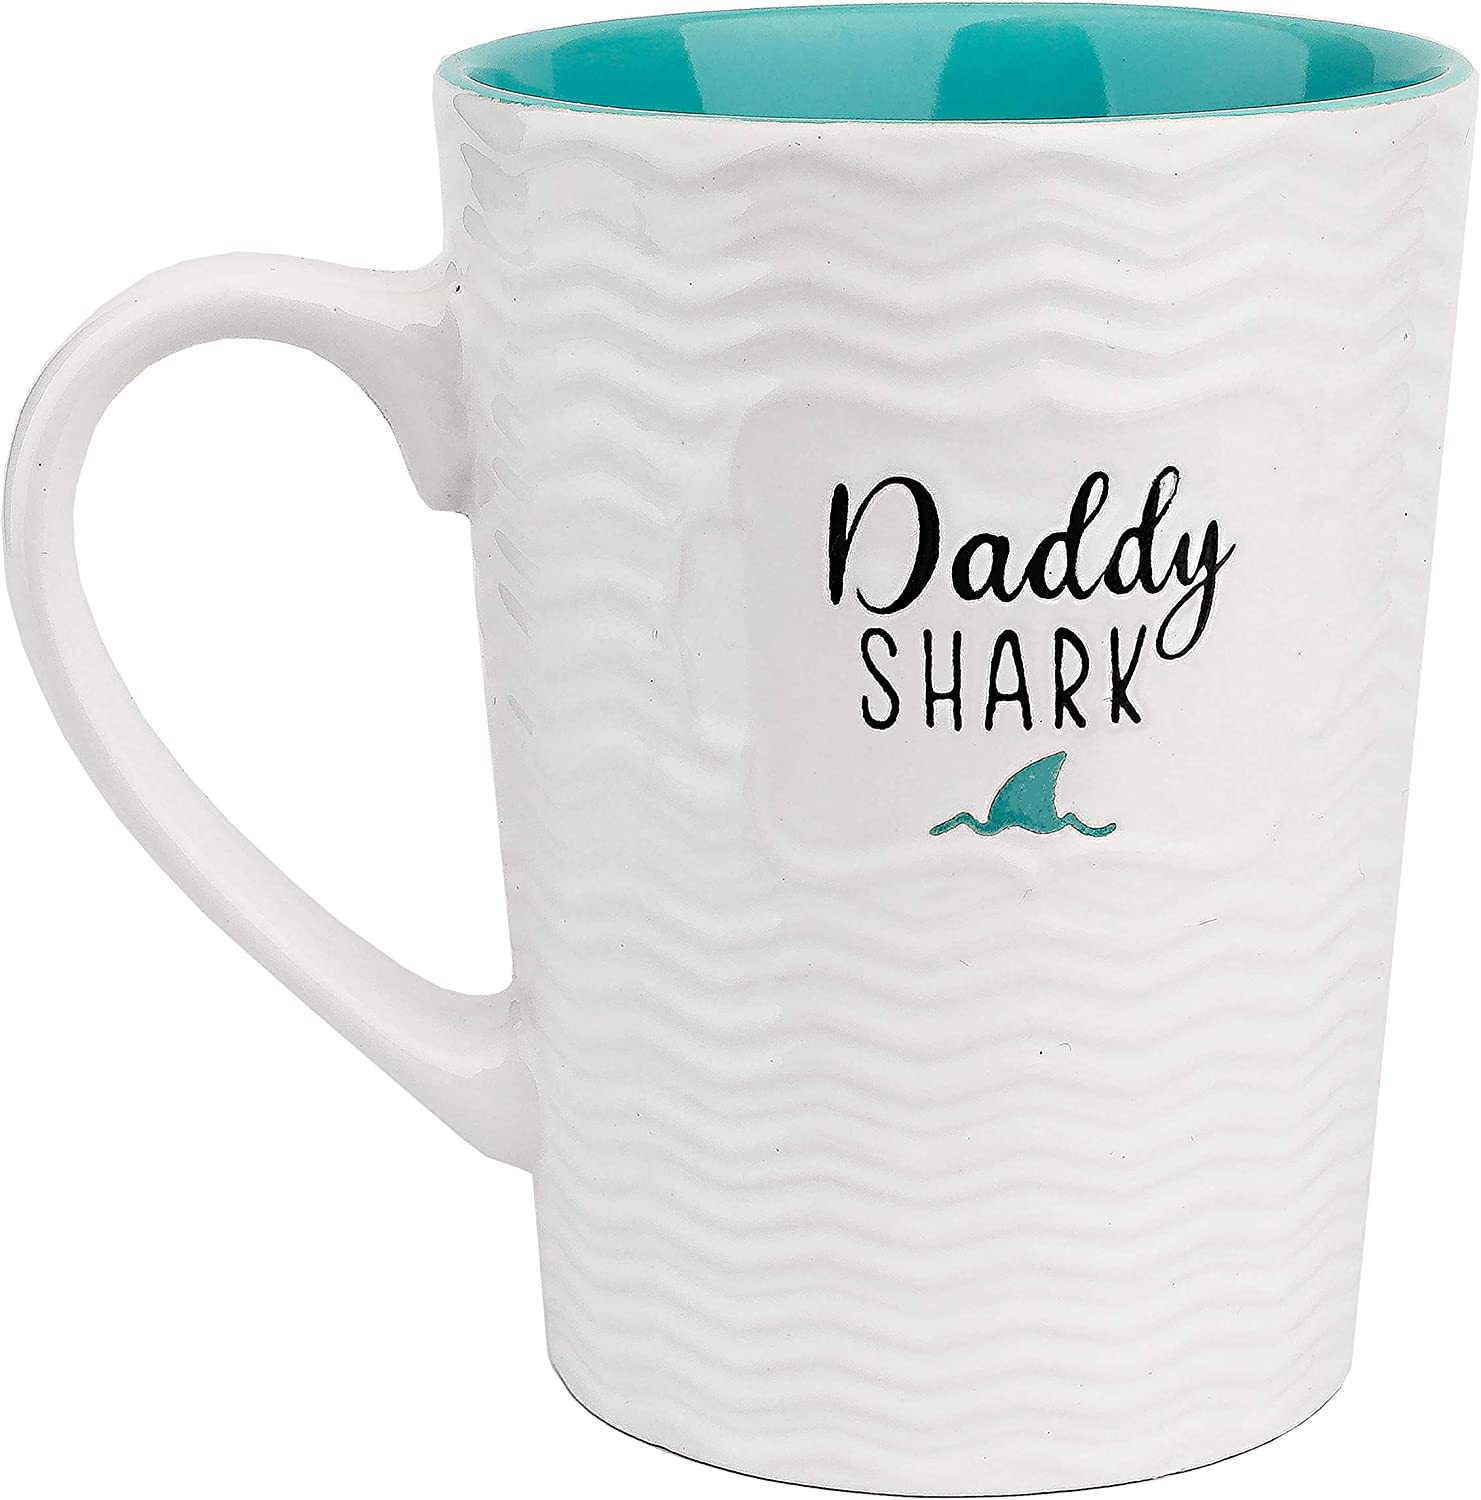 Ynsfree Daddy Shark Cute 16-oz Coffee and Tea Mugs,For Dad Father's Day Funny Ceramic Blue Mugs